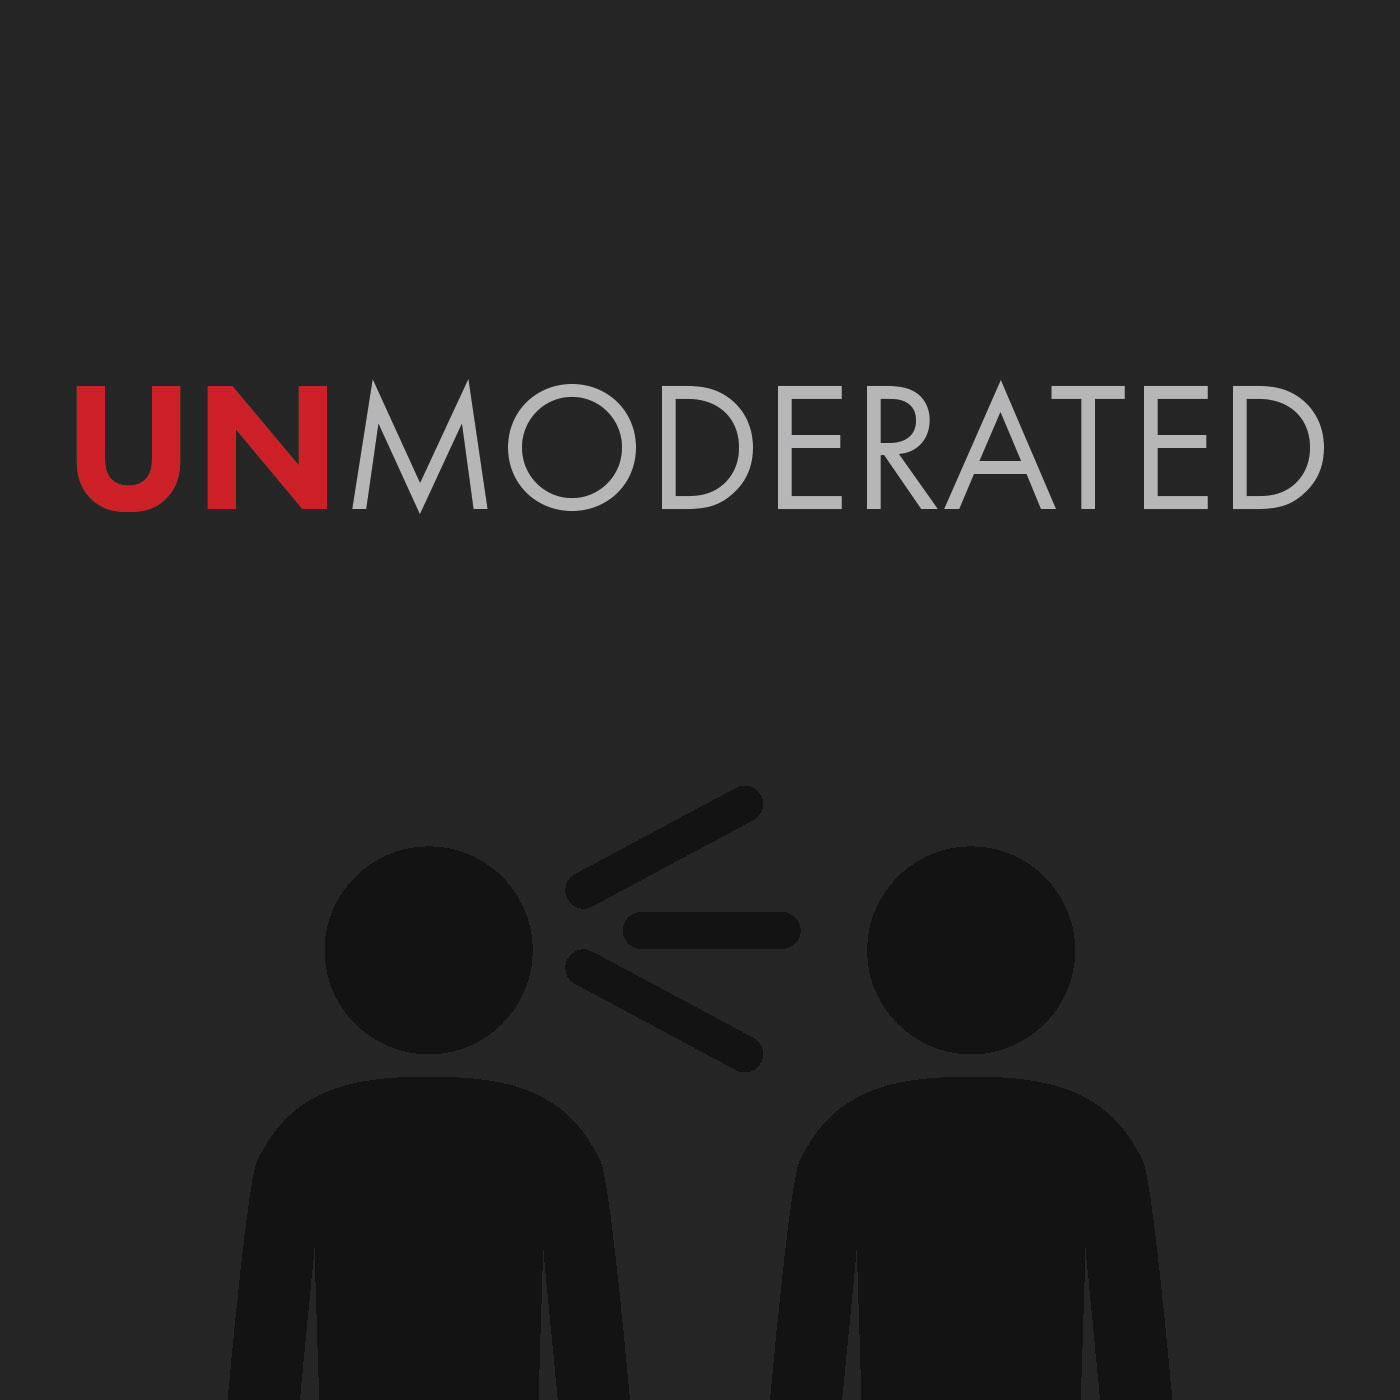 Unmoderated